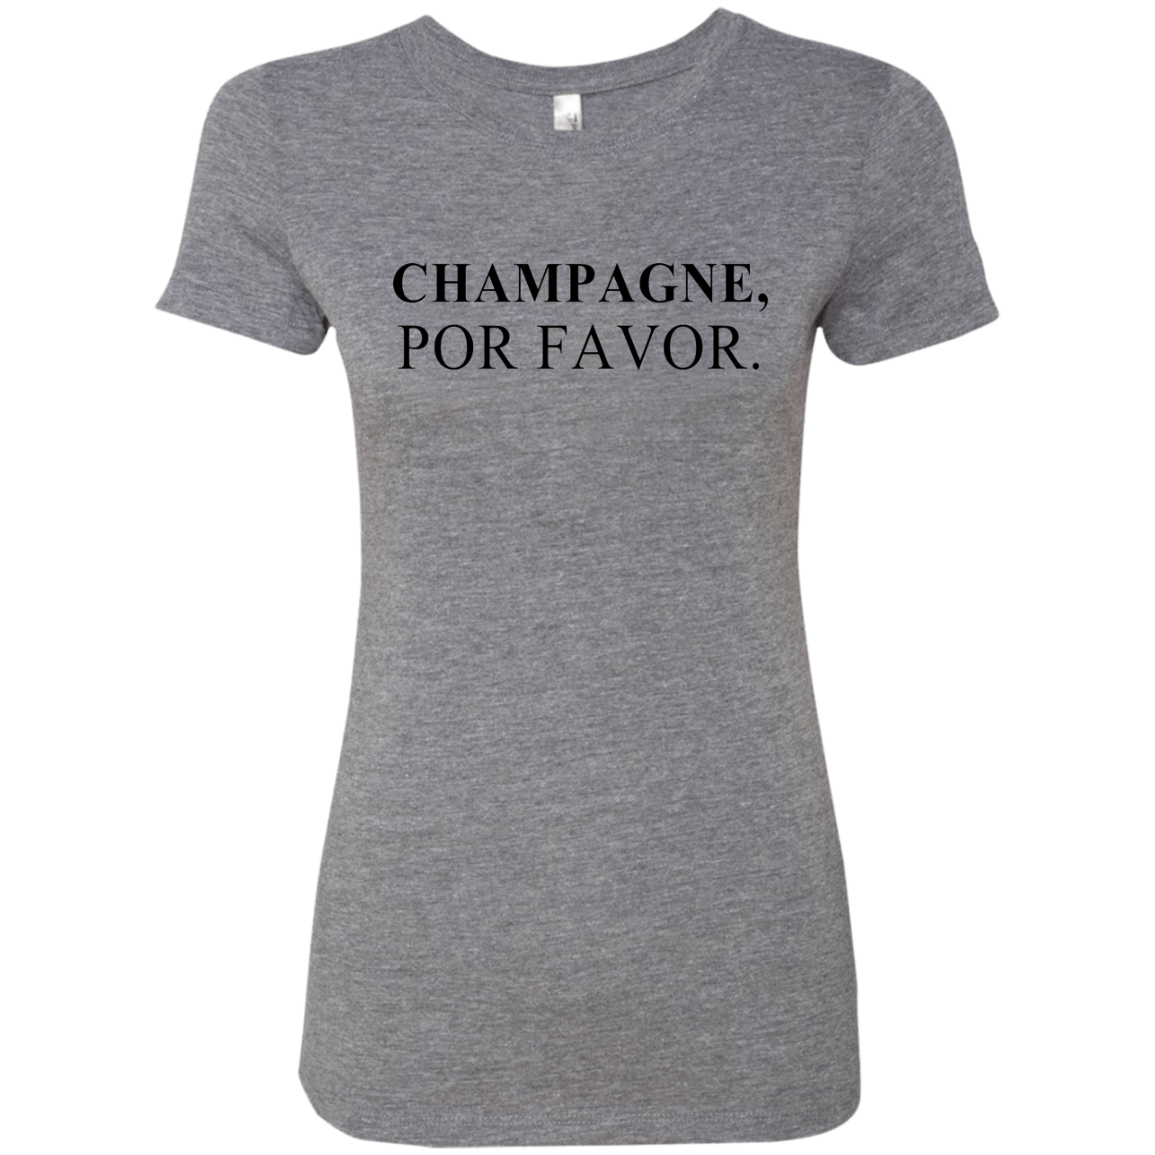 Champagne Por Favor Women's Classic Tee - Trendy Tees